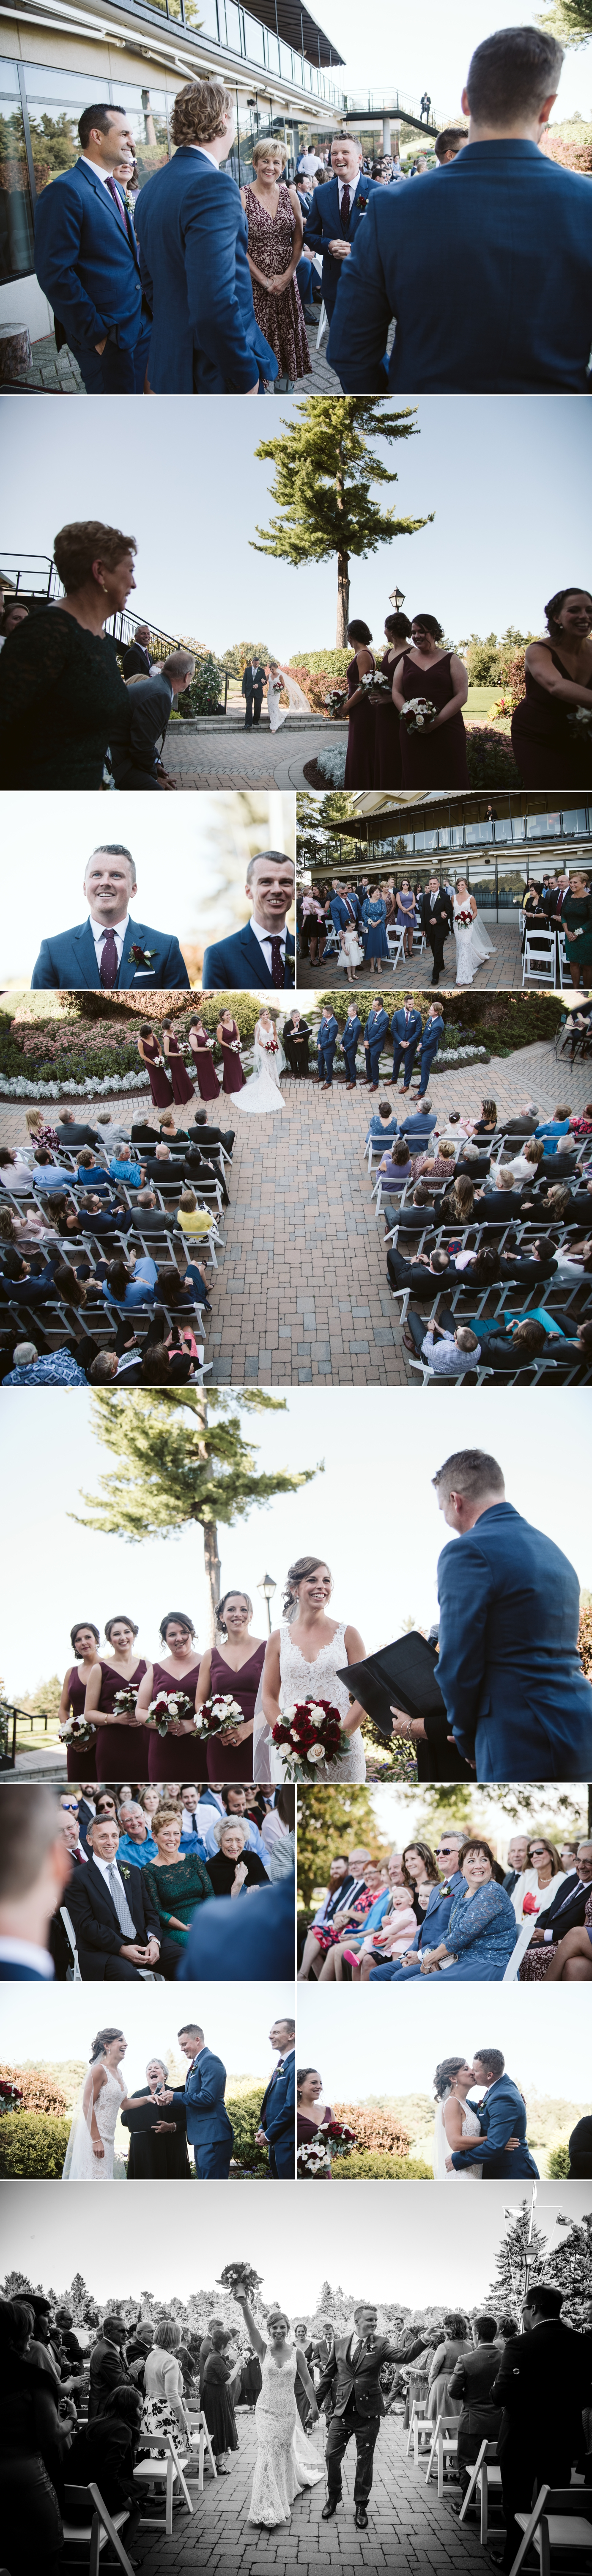 candid moments during a hunt and golf club wedding ceremony in ottawa ontario